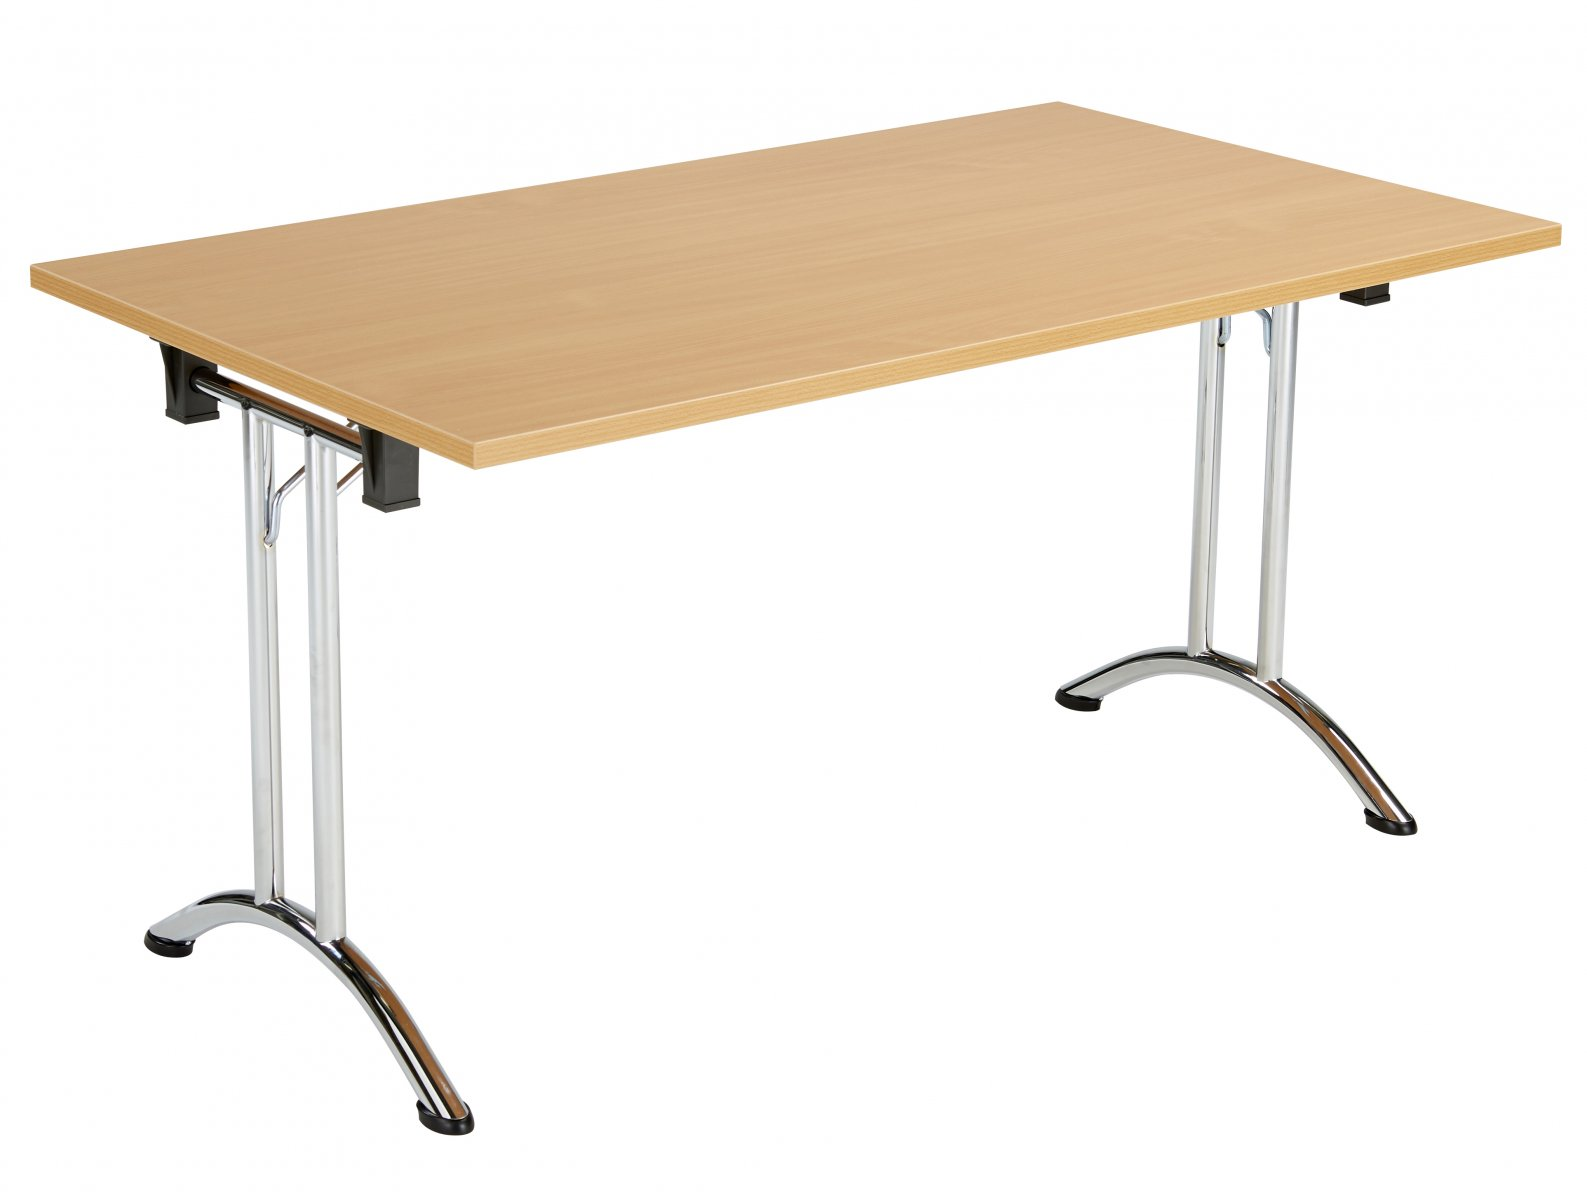 Union Rectangular 140 x 70 Folding Meeting Table - Beech with Chrome Frame